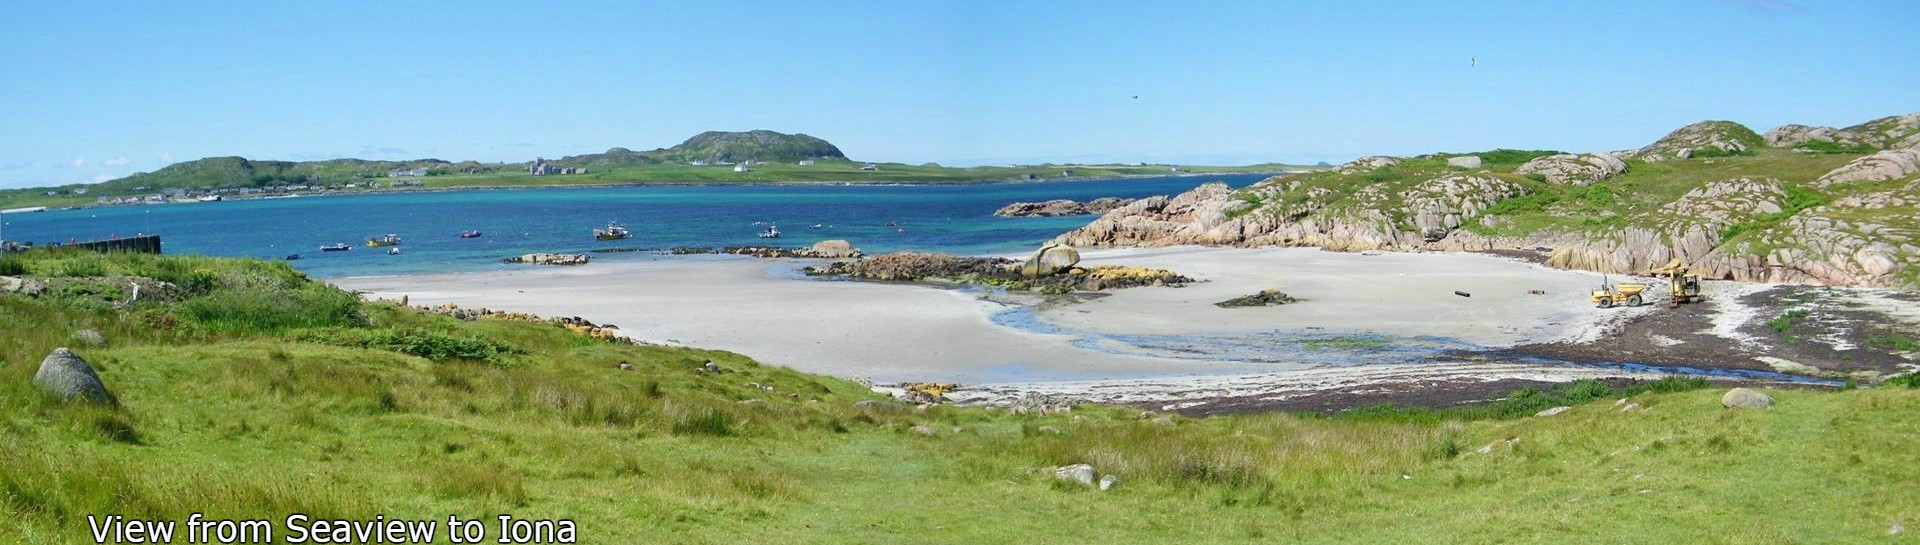 Seaview bed and breakfast,Fionnphort to Iona, Isle of Mull